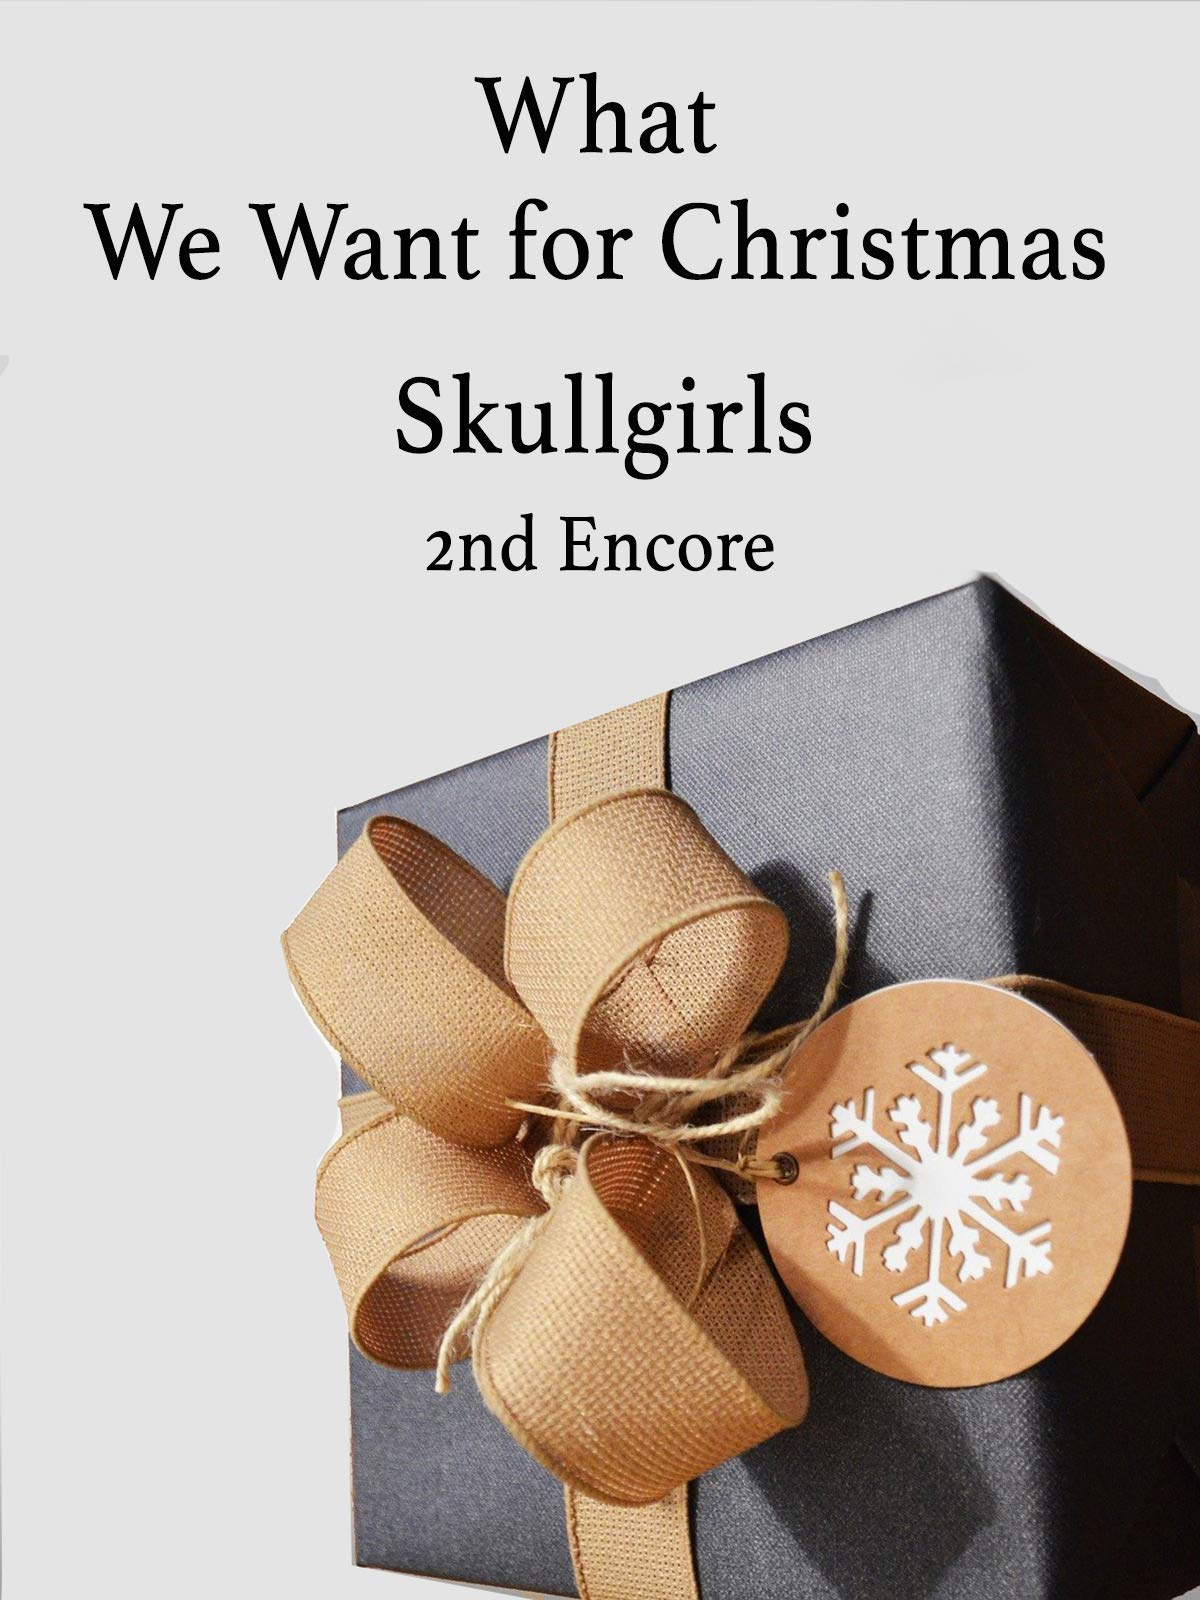 What We Want for Christmas Skullgirls 2nd Encore